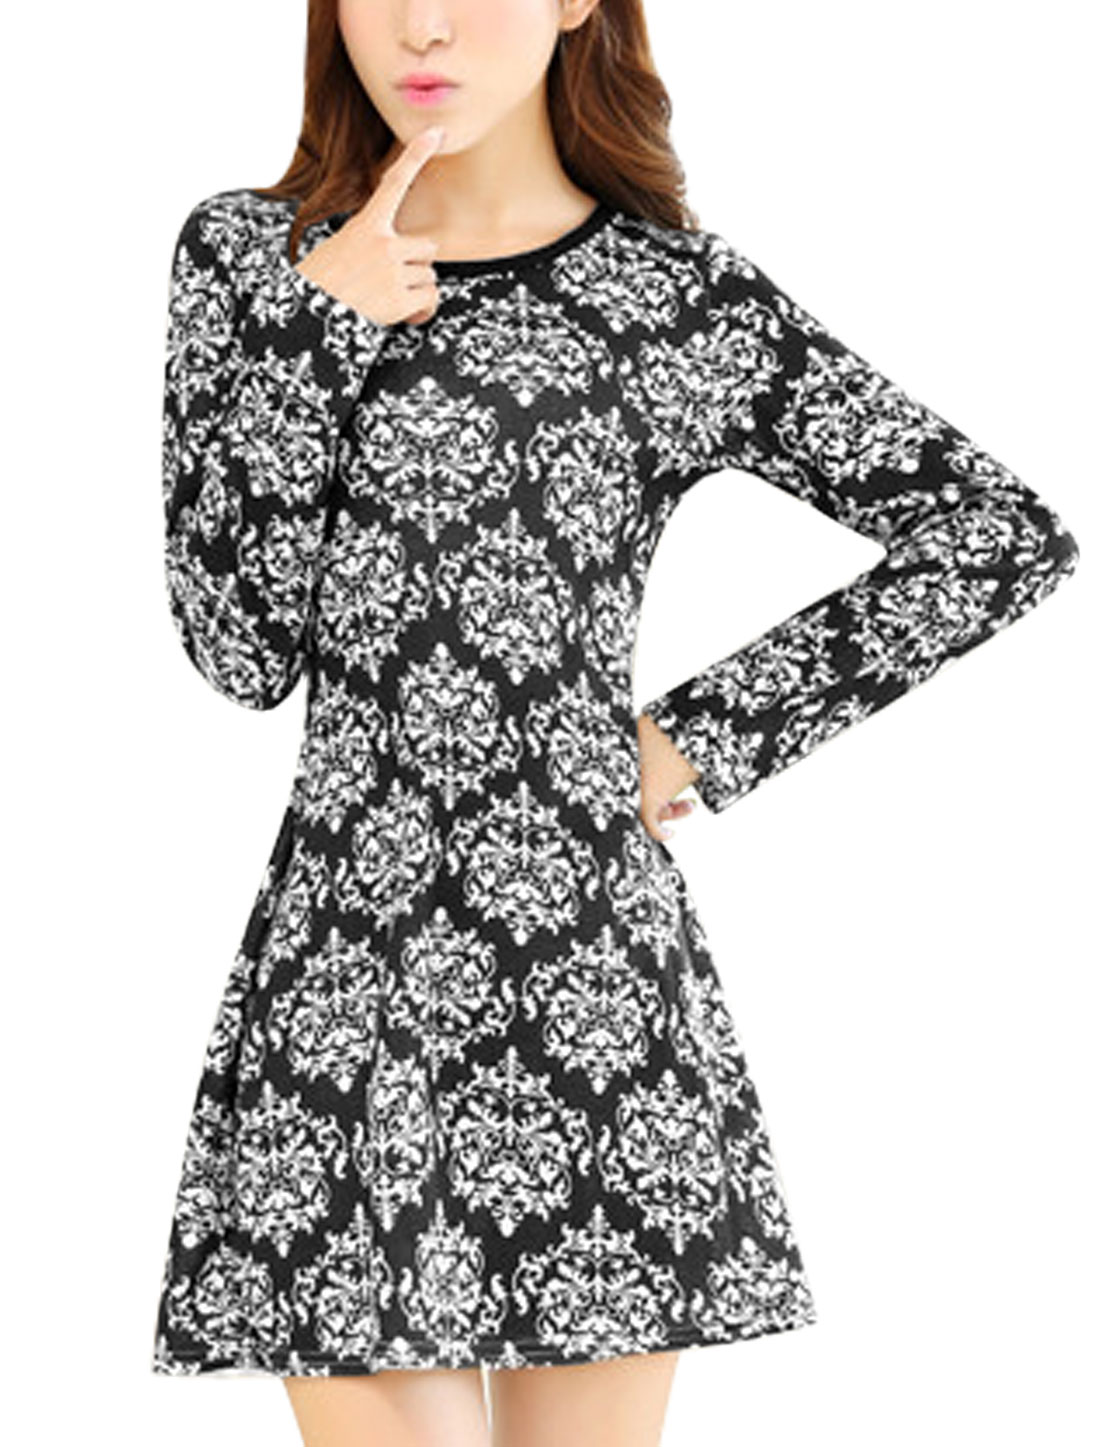 Ladies Jacquard Pattern Long Sleeves Slipover Knit Dress Black White XS